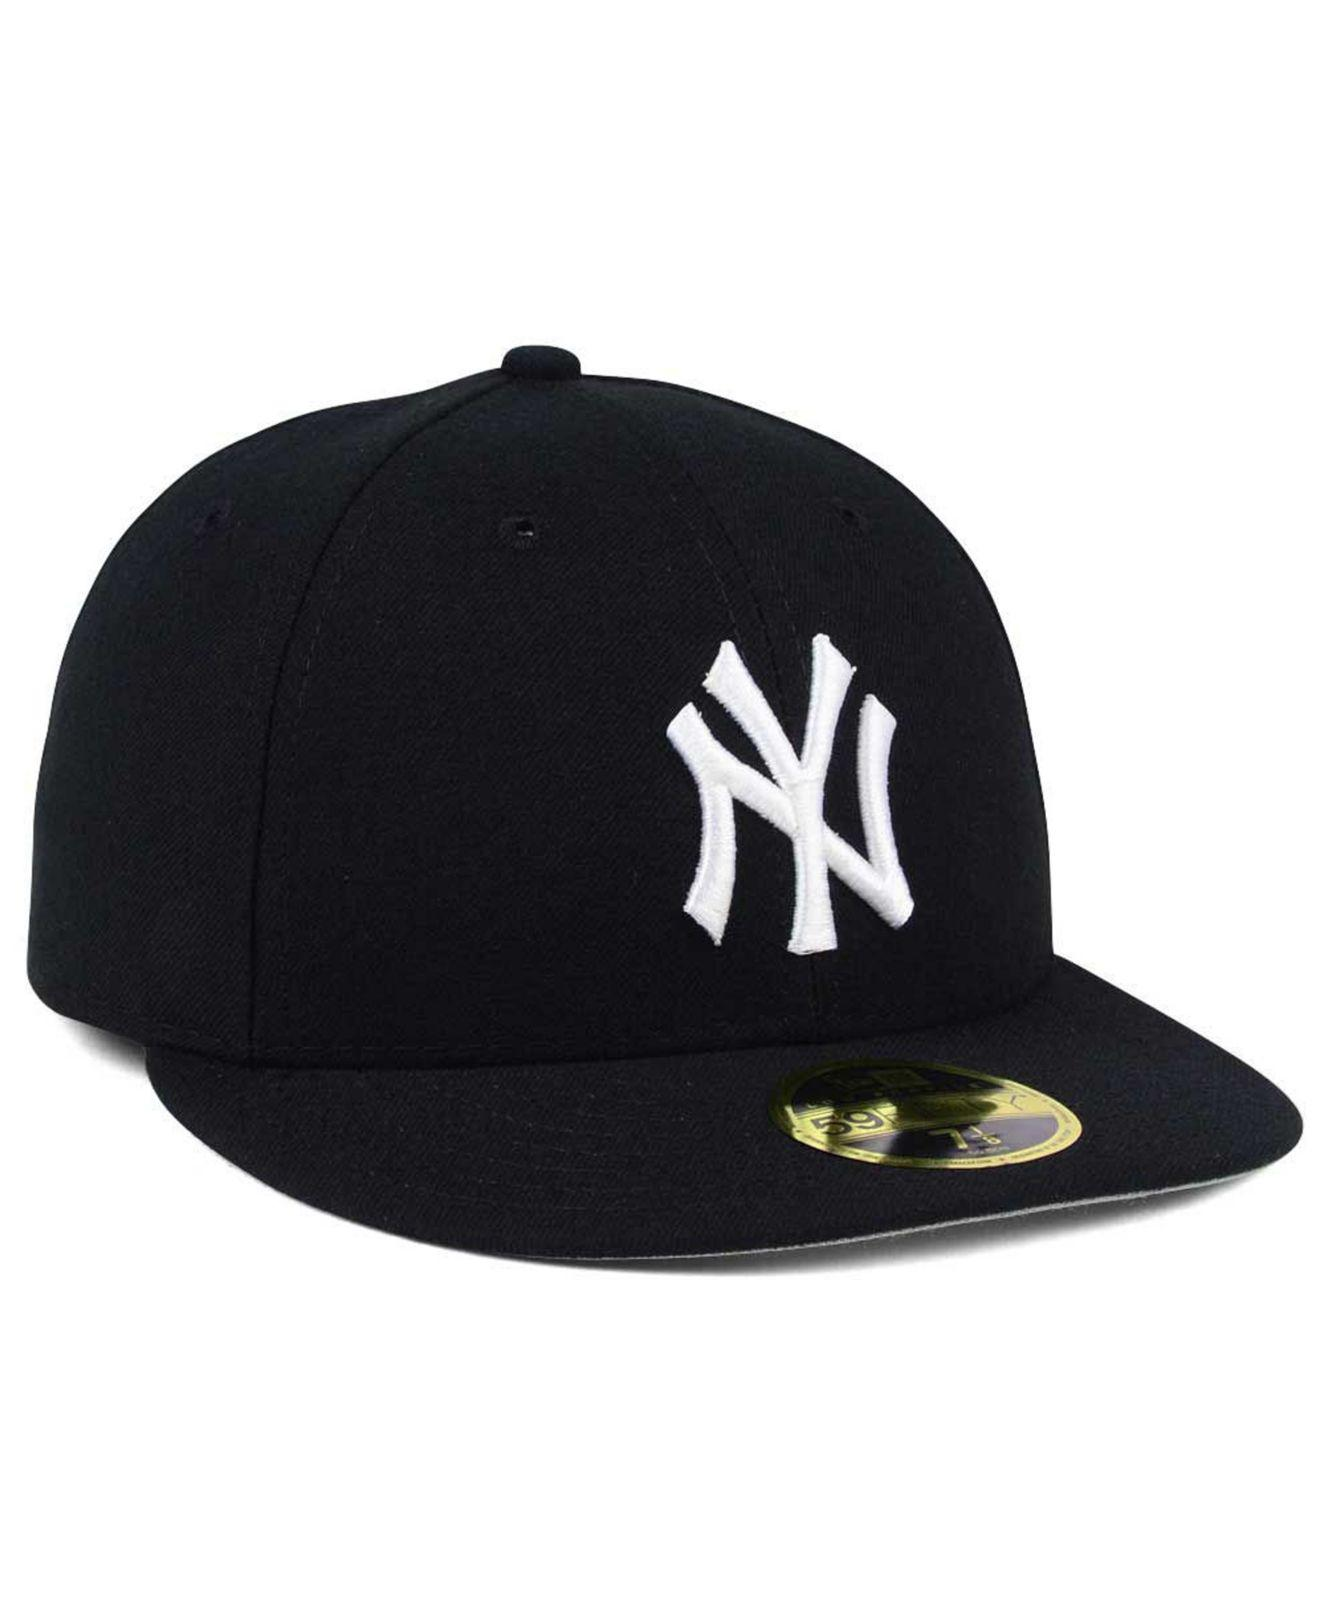 best website 034bf 1d887 KTZ New York Yankees Low Profile C-dub 59fifty Fitted Cap in Black ...